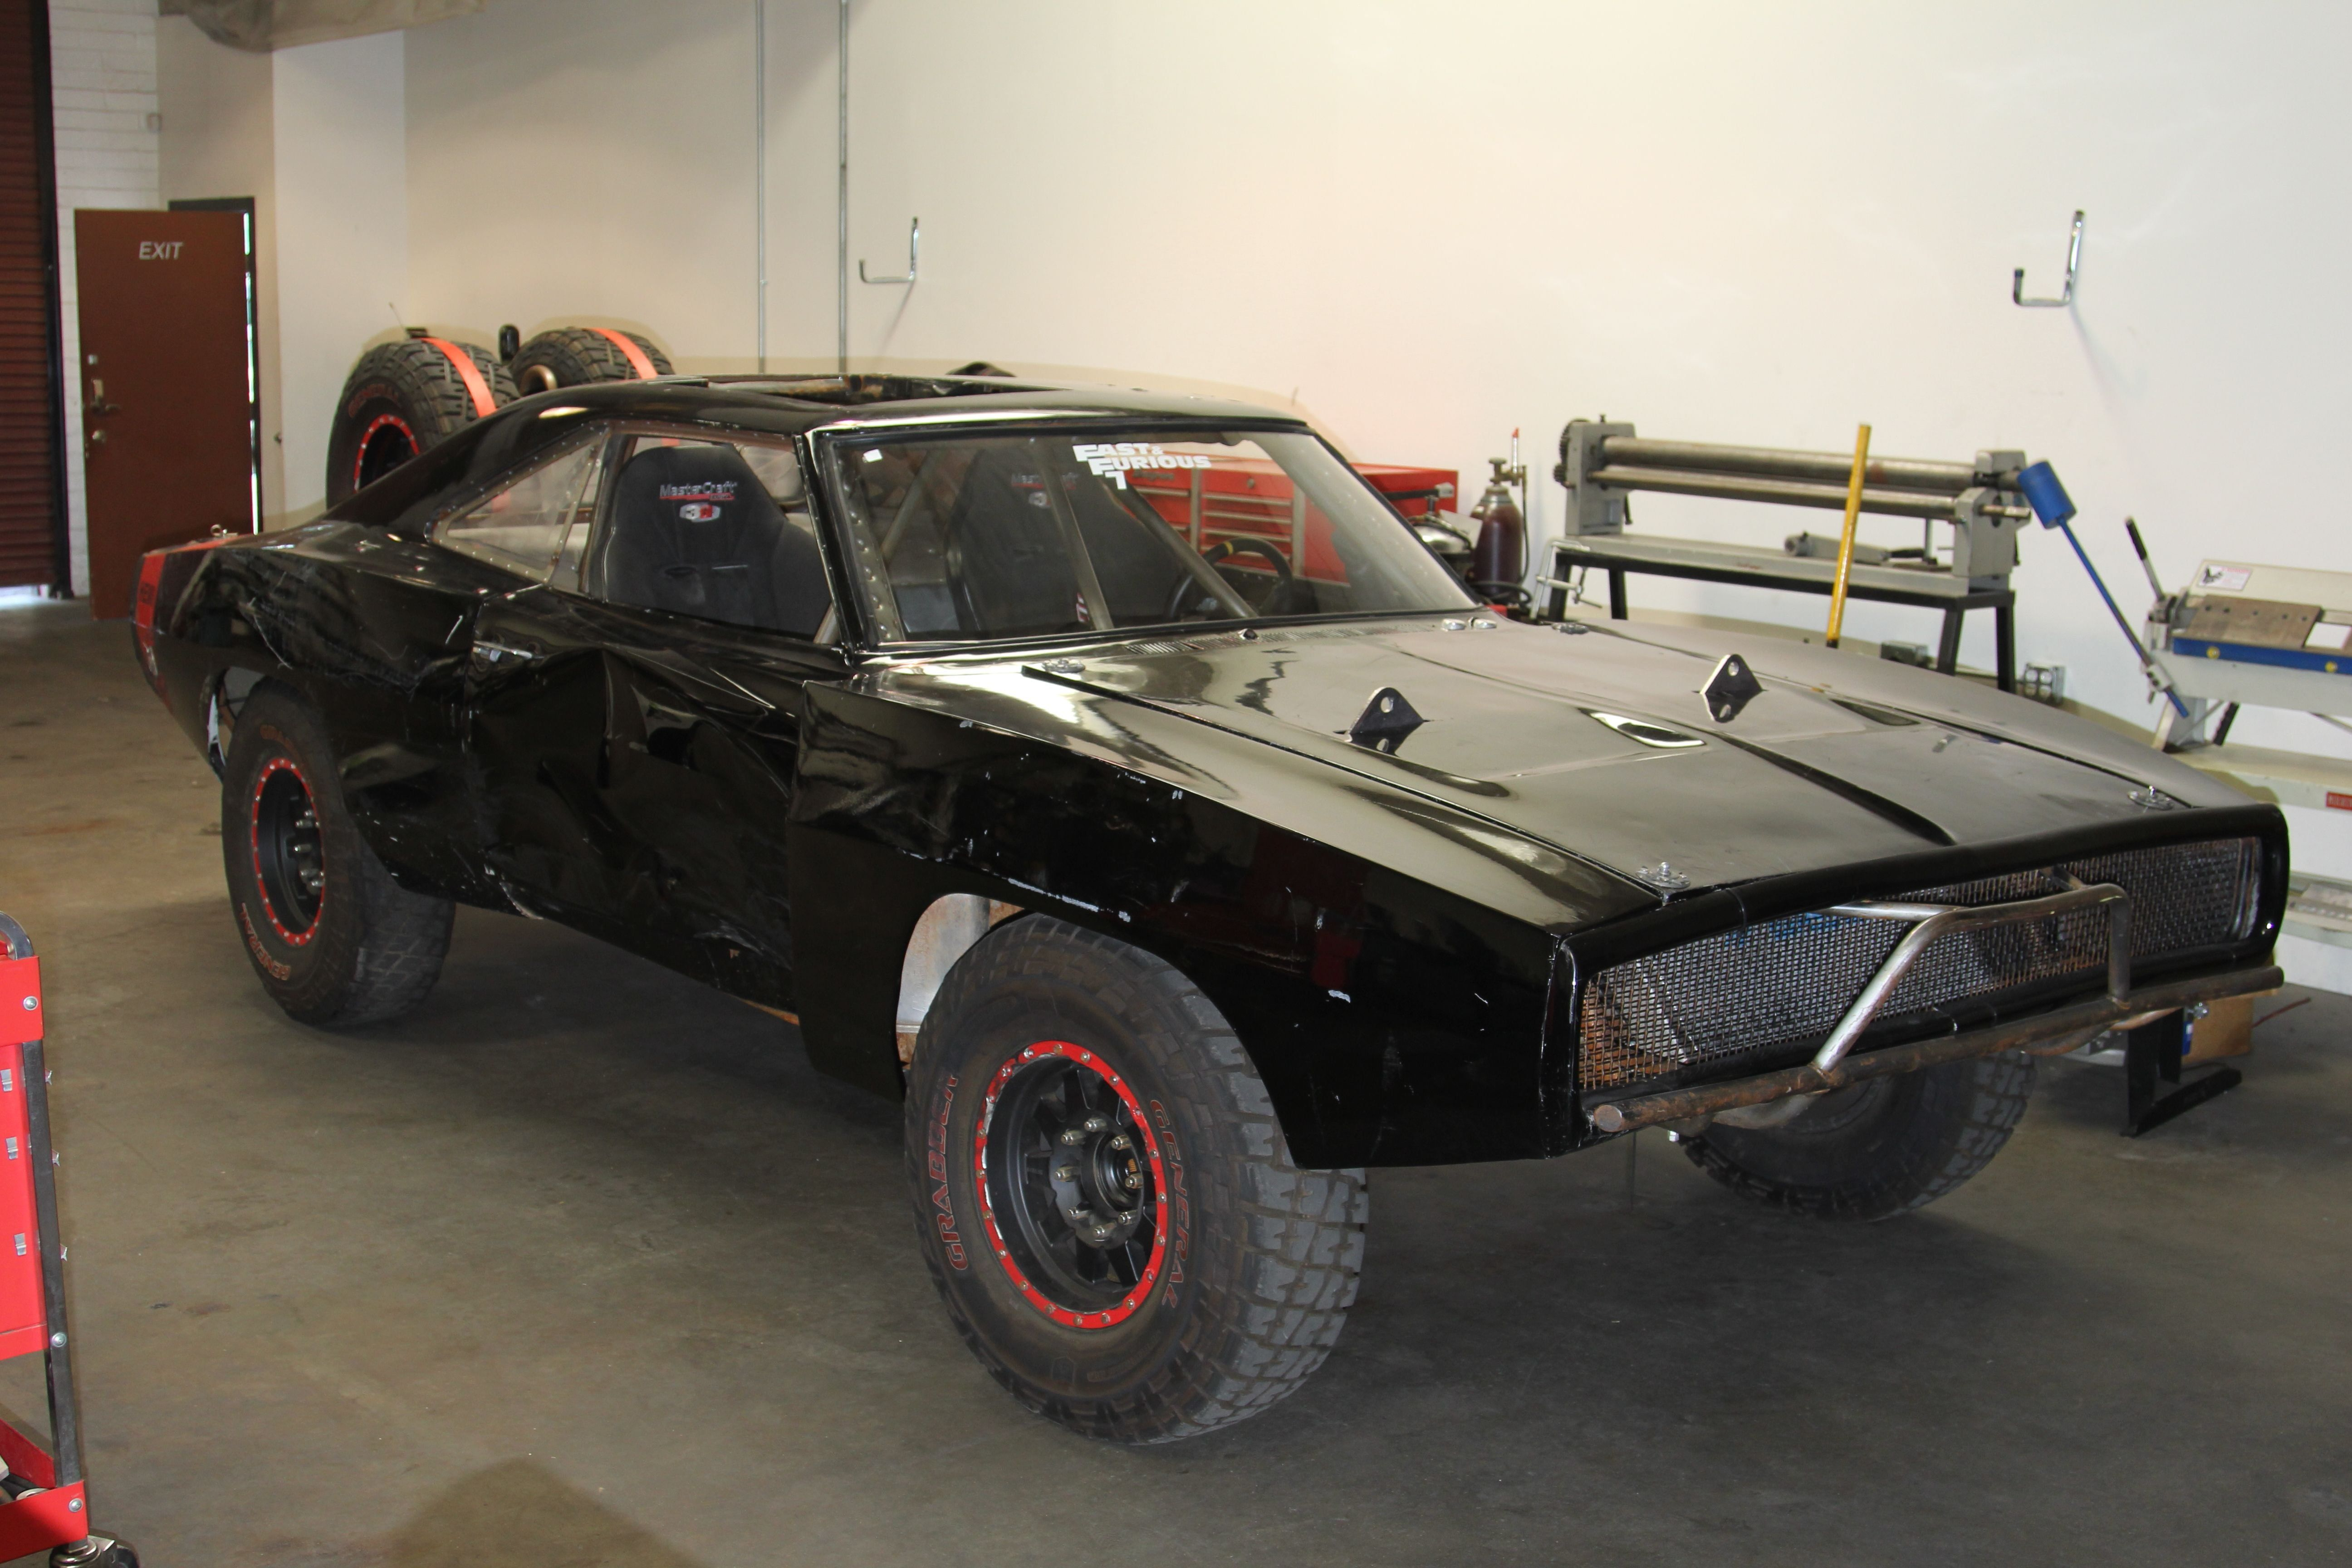 Desktop Dodgecharger Rt f Road Fast And Furious Movie Black Usa